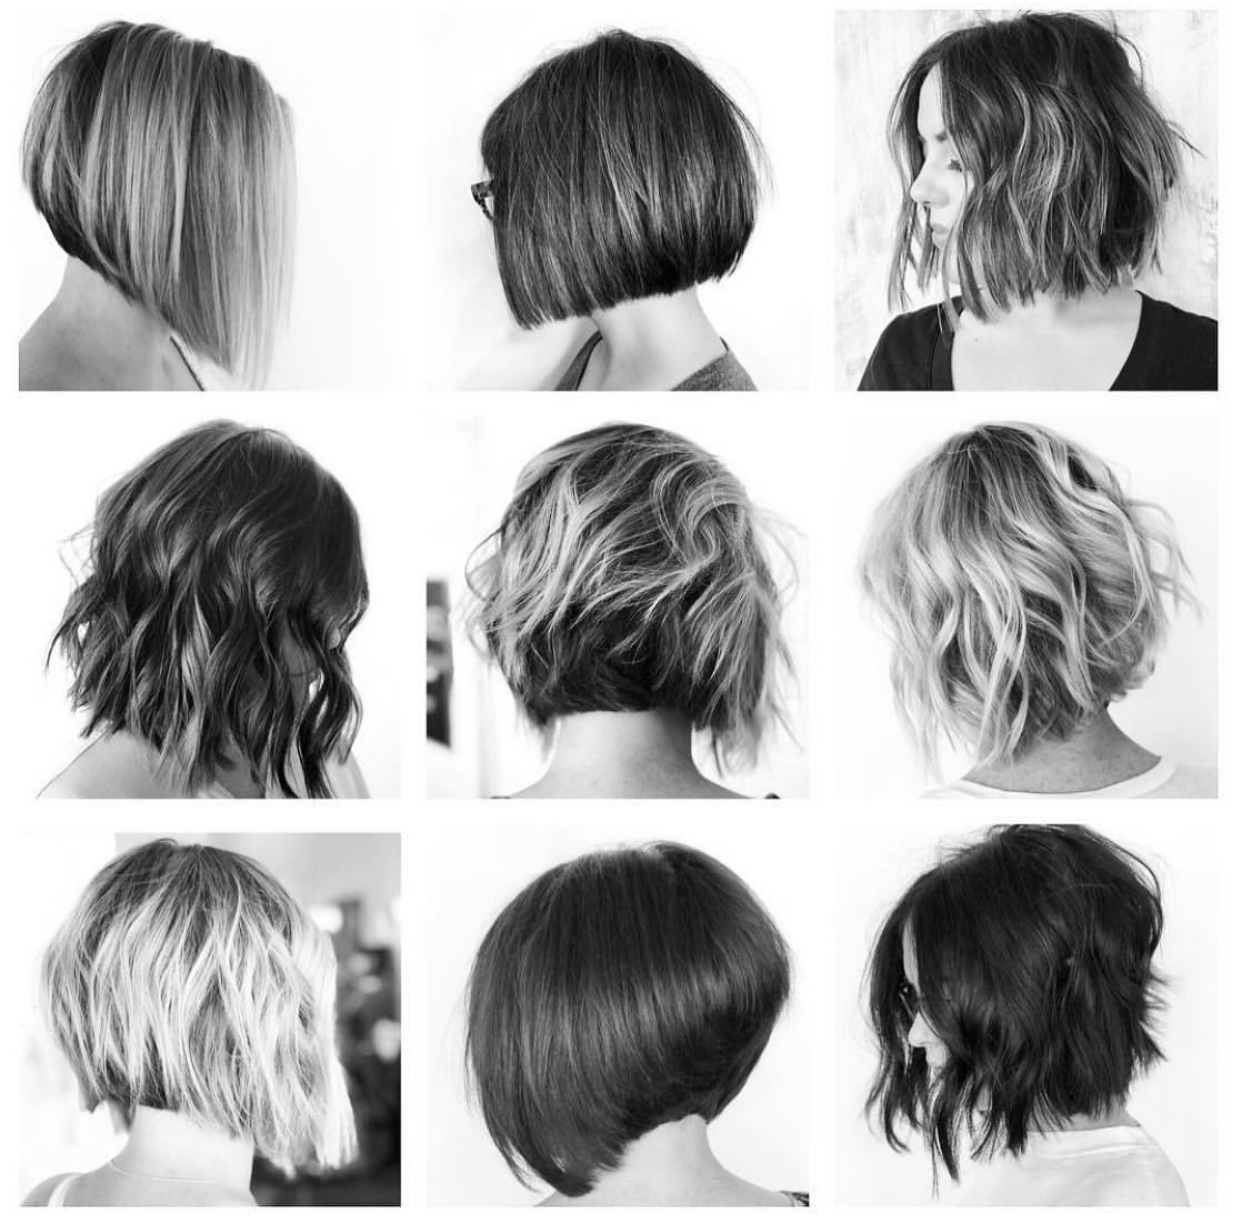 6 Steps to a Saucy Bob Cut